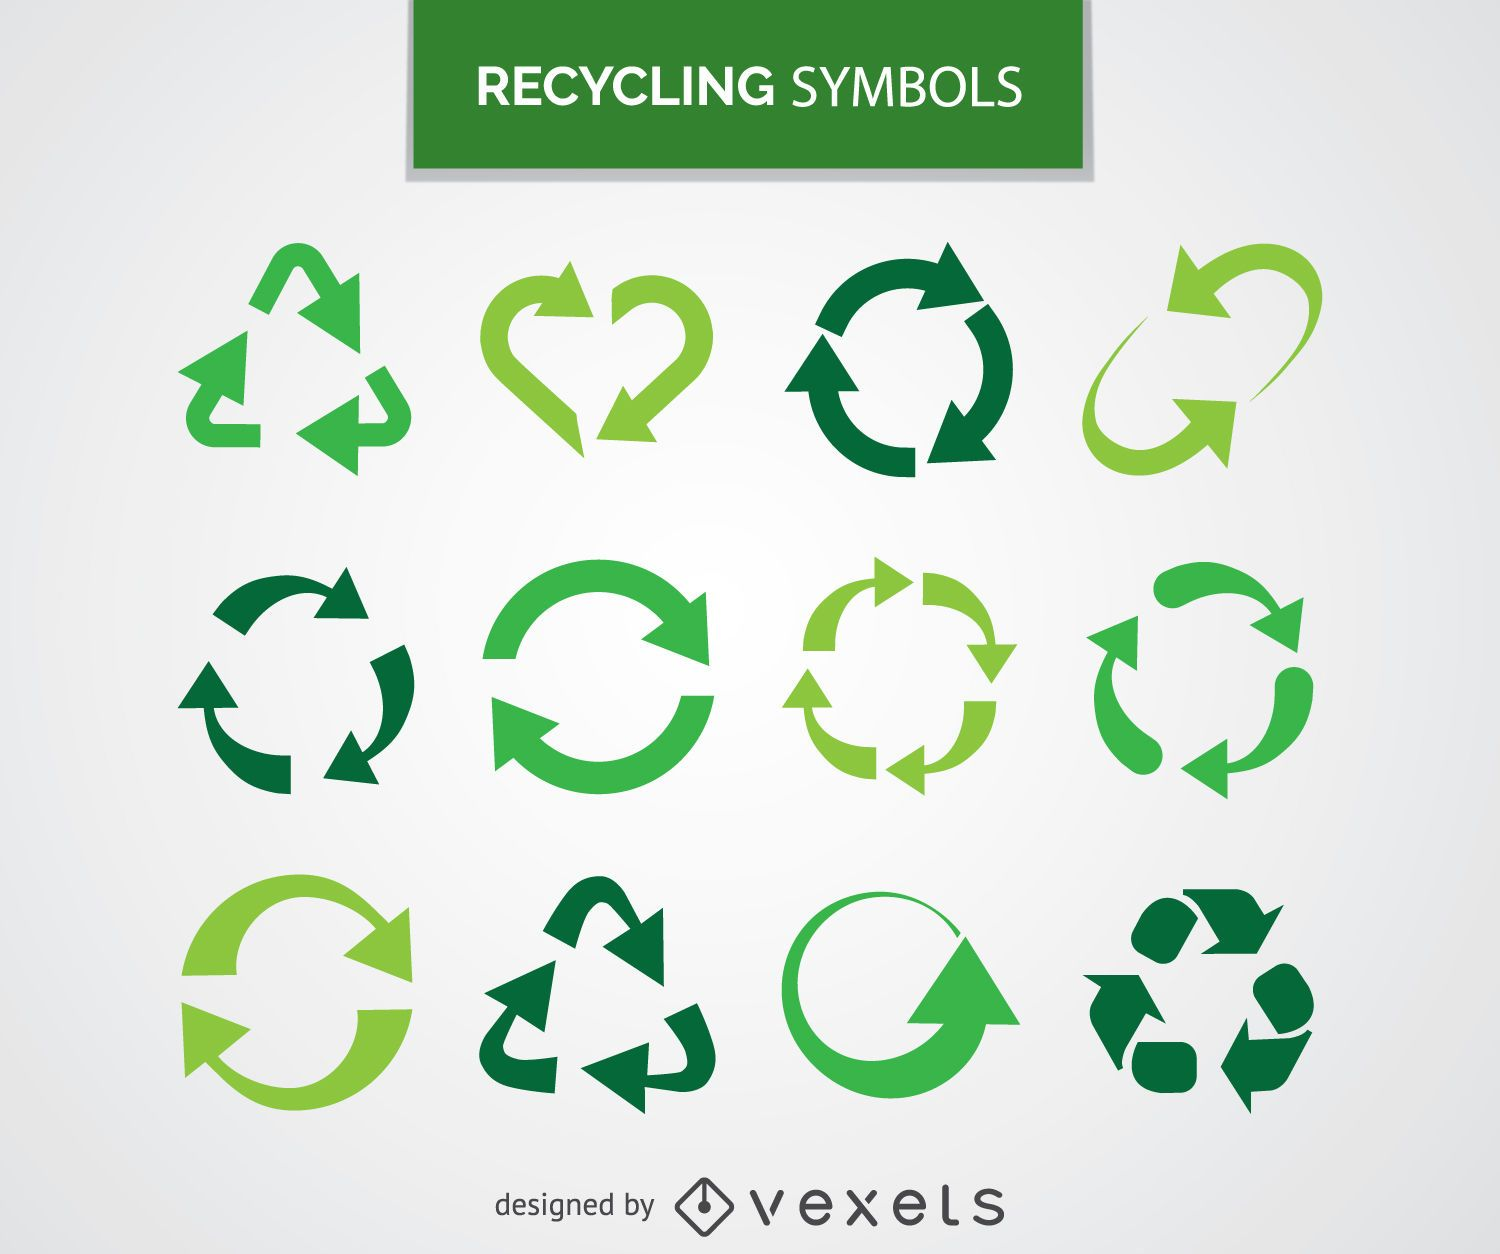 Collection of recycling symbols